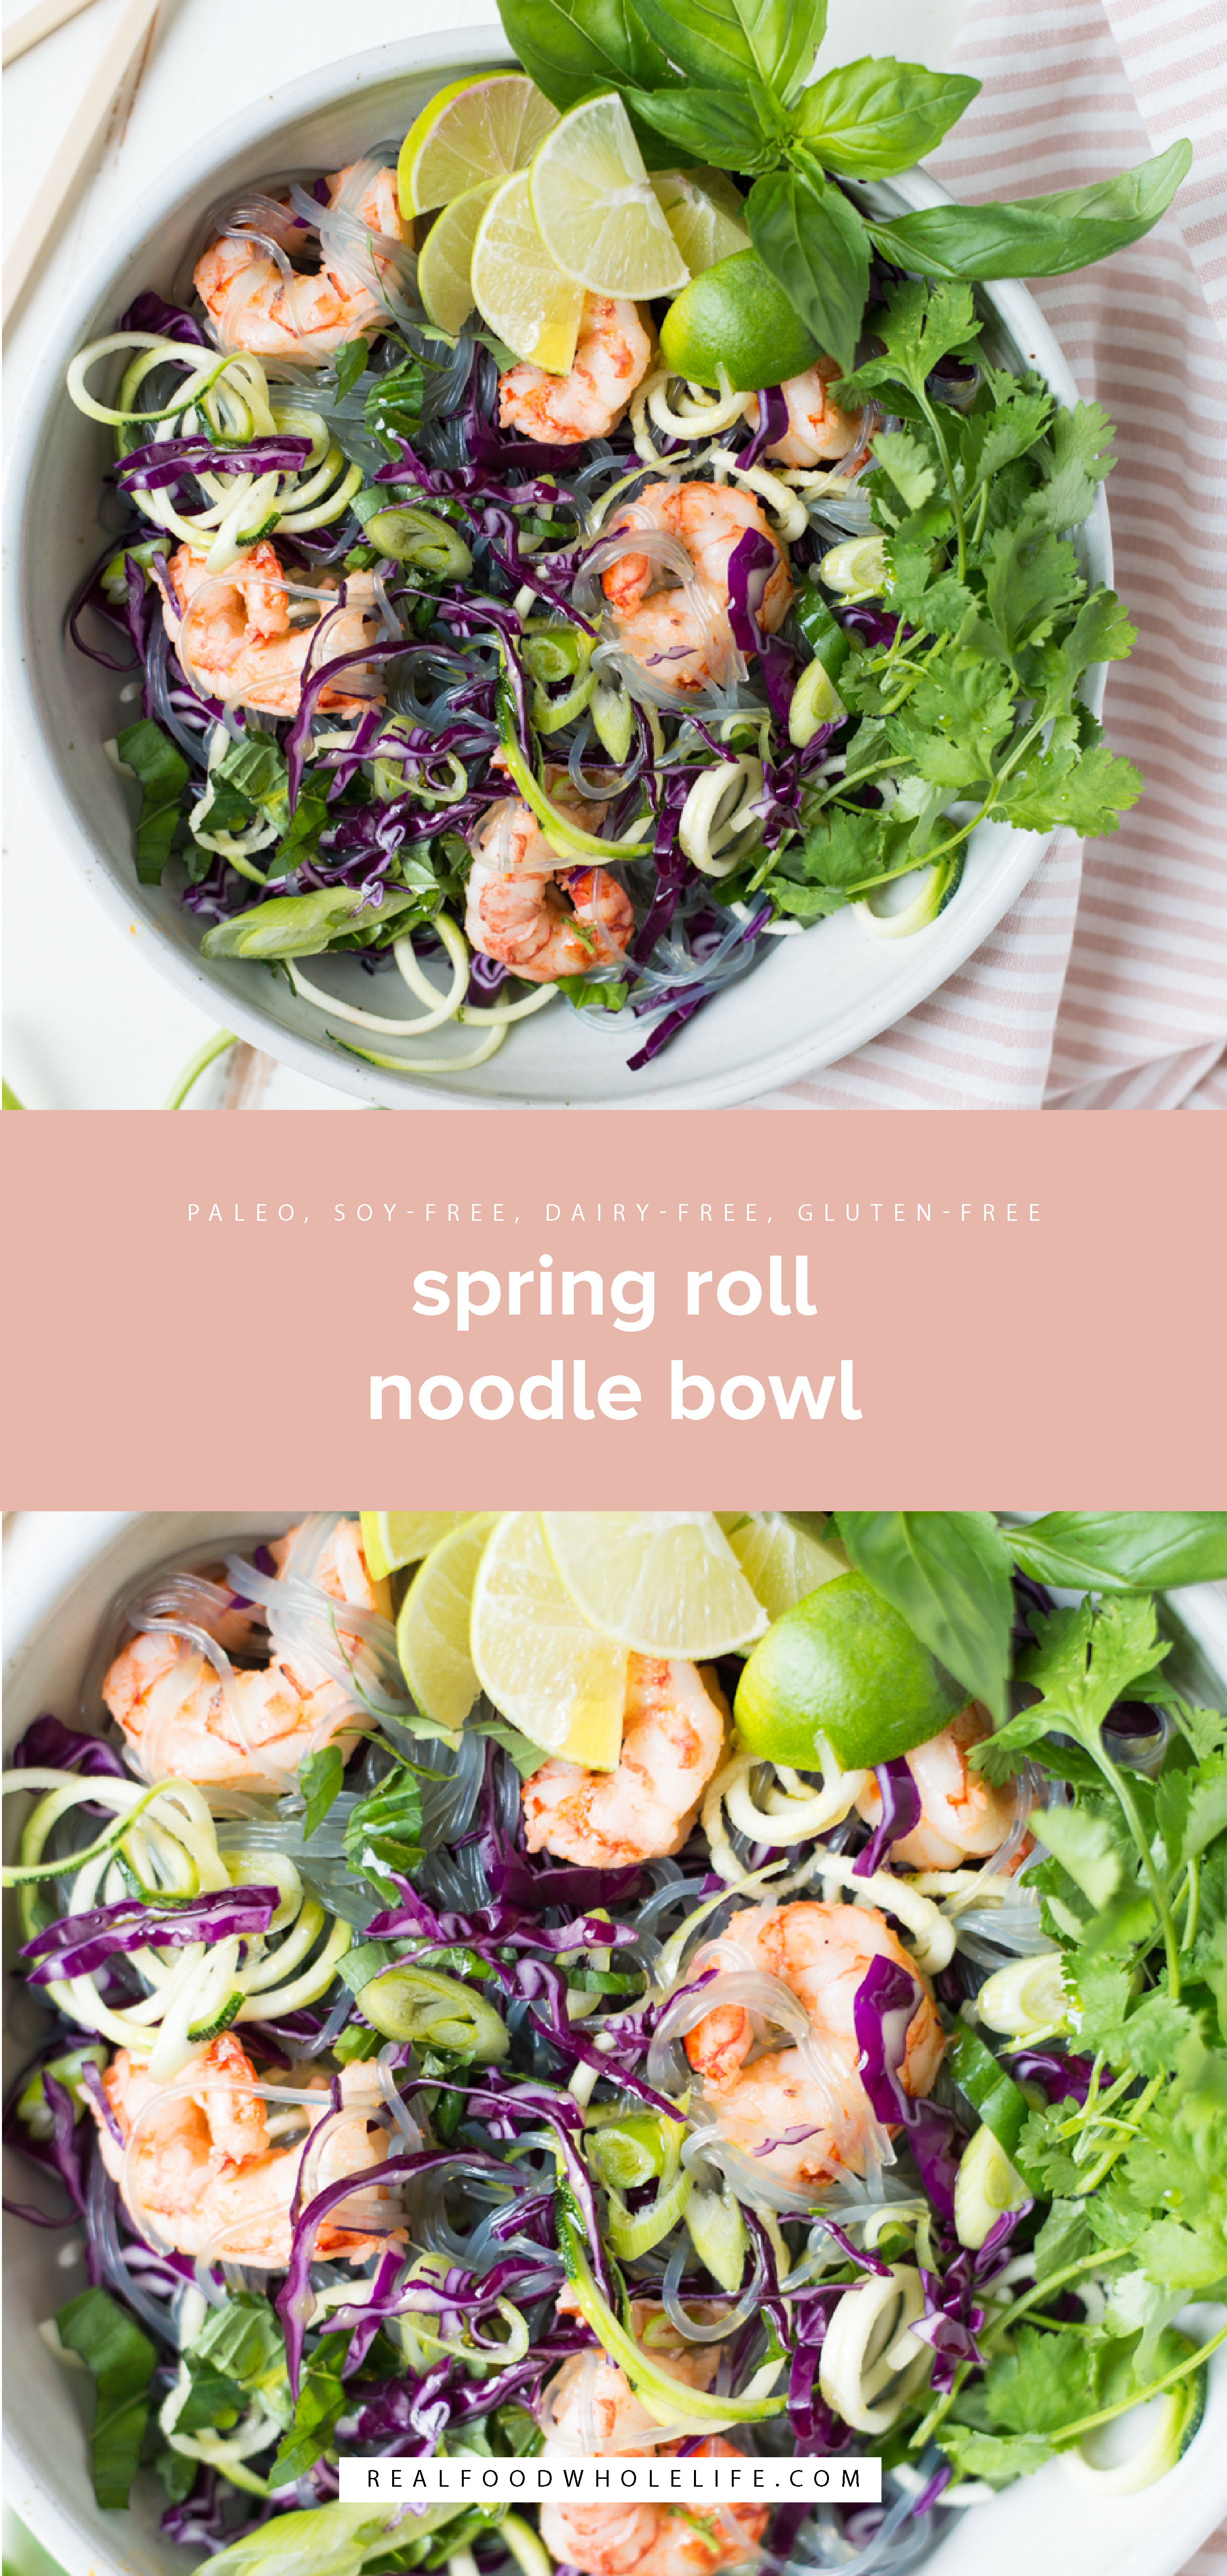 Virtually no cooking is required for this super-fast, super-fresh paleo recipe. Spring Roll Noodle Bowls is what's for dinner tonight! Gluten-free, dairy-free, soy-free and nut-free.